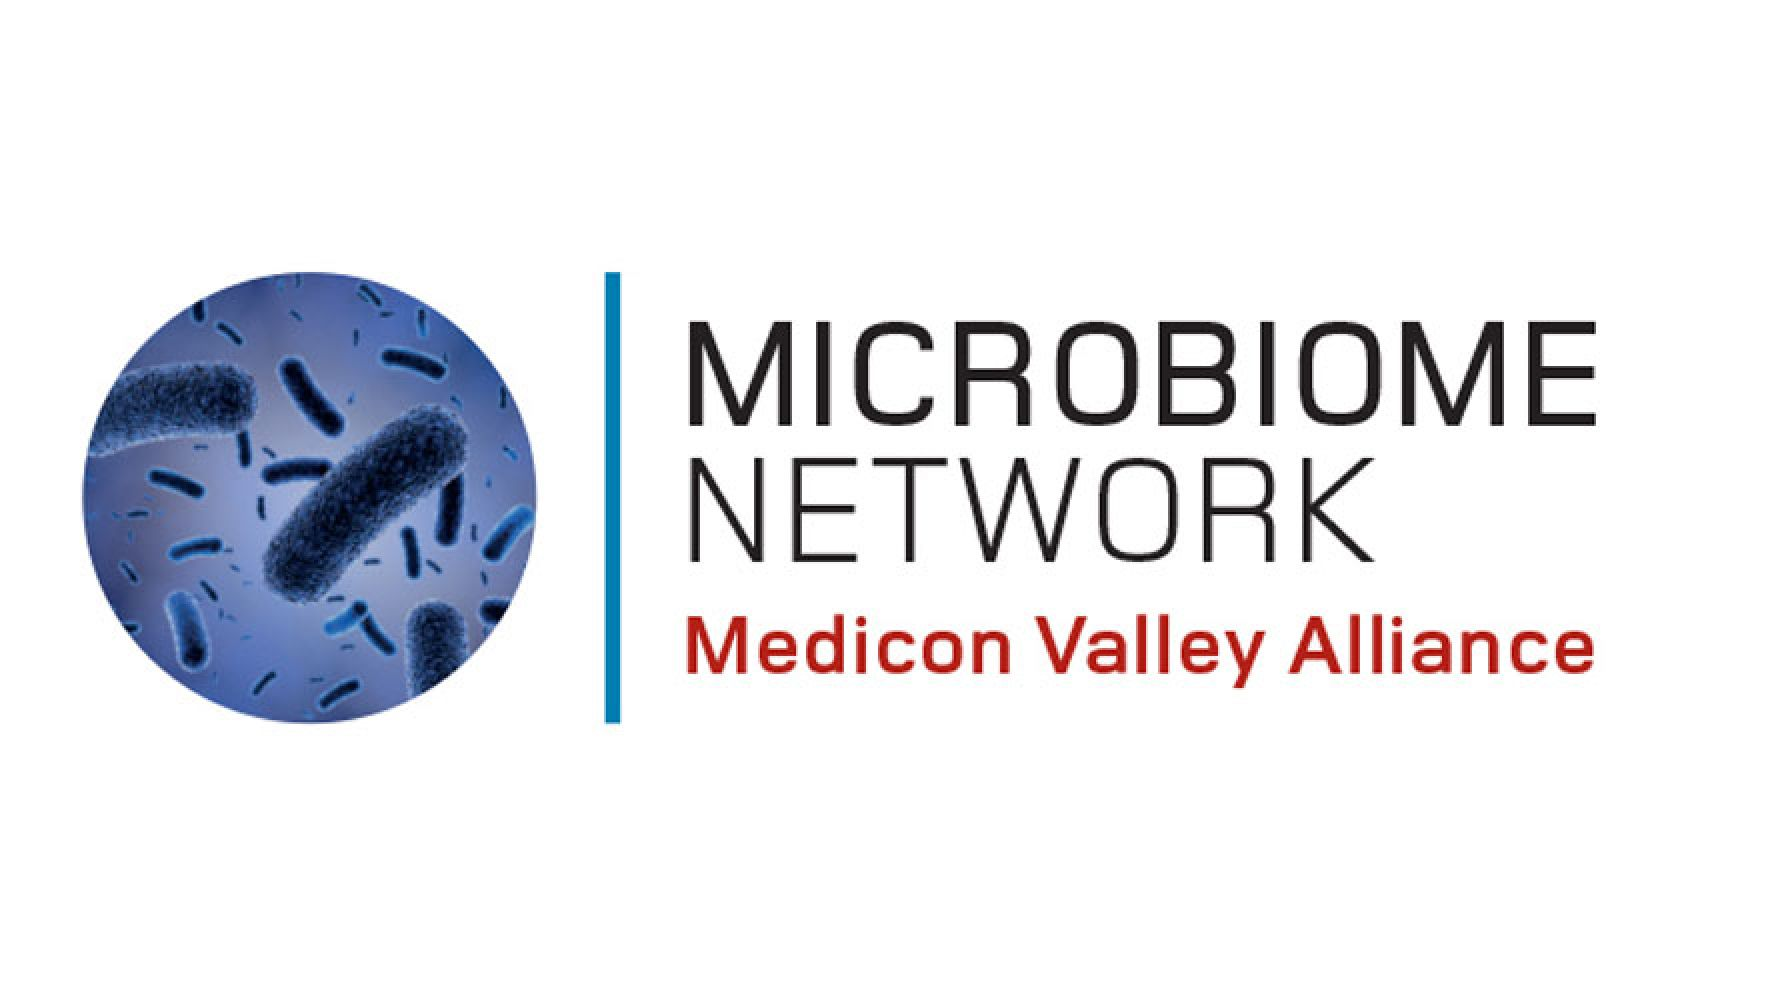 CANCELLED: Medicon Valley Alliance Microbiome Network meeting